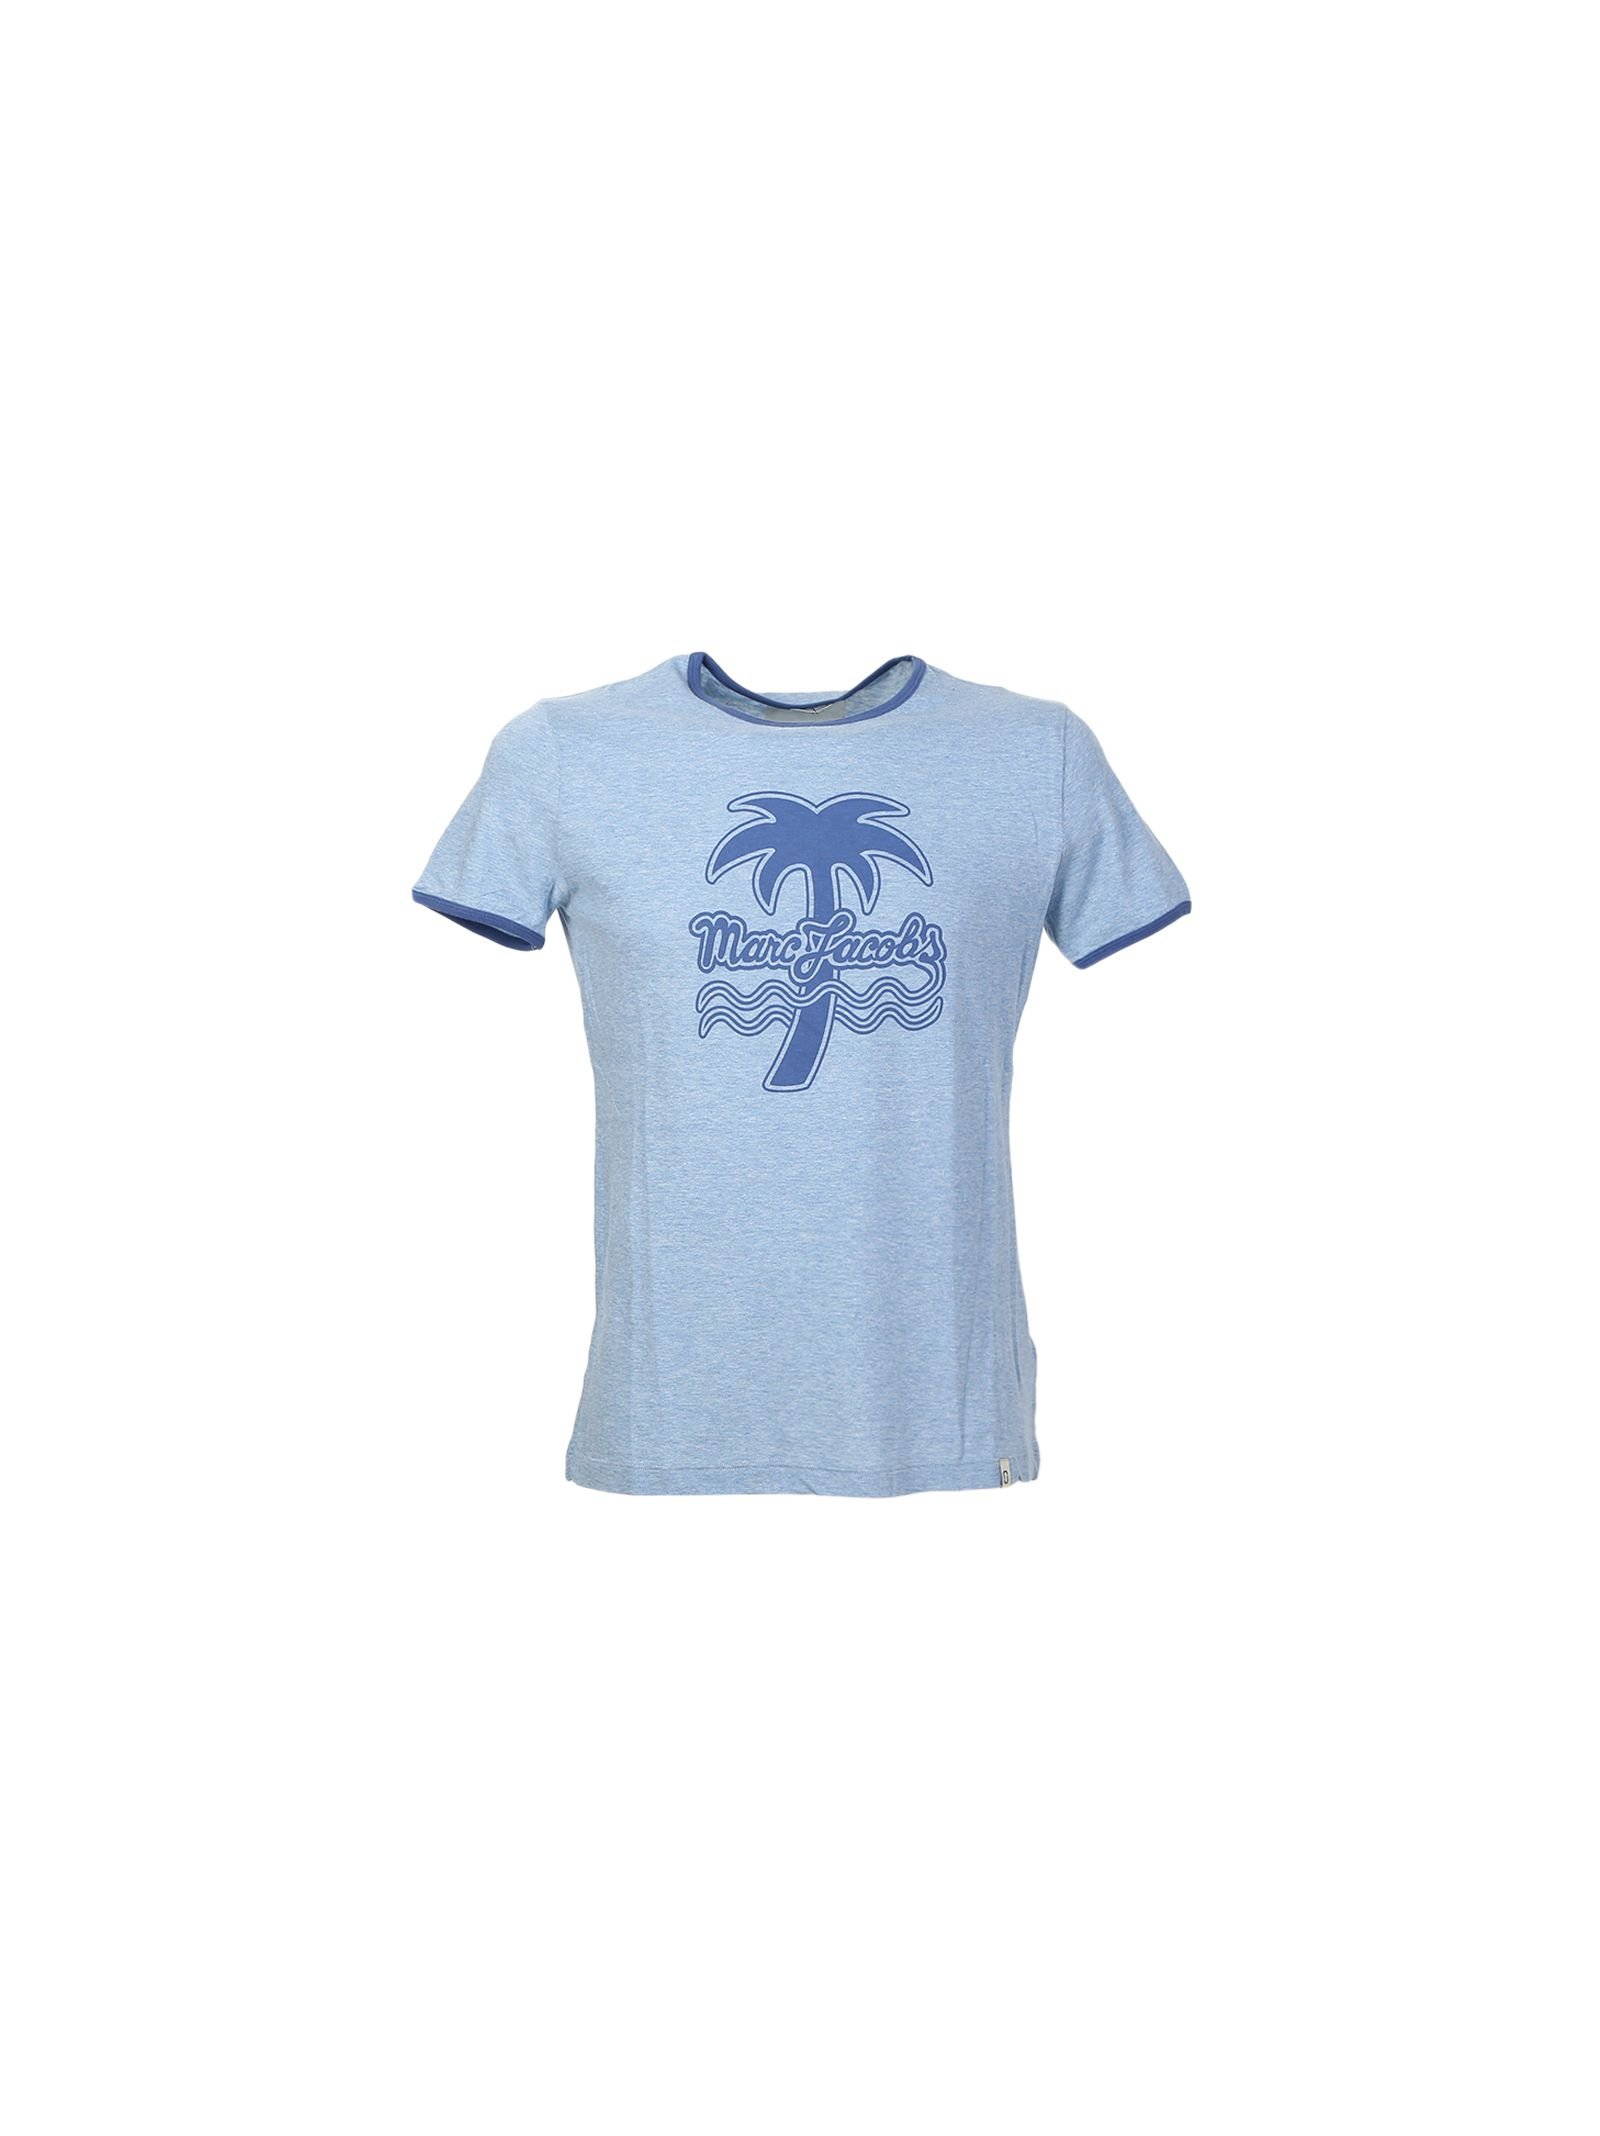 marc jacobs male printed blue melange cotton tshirt